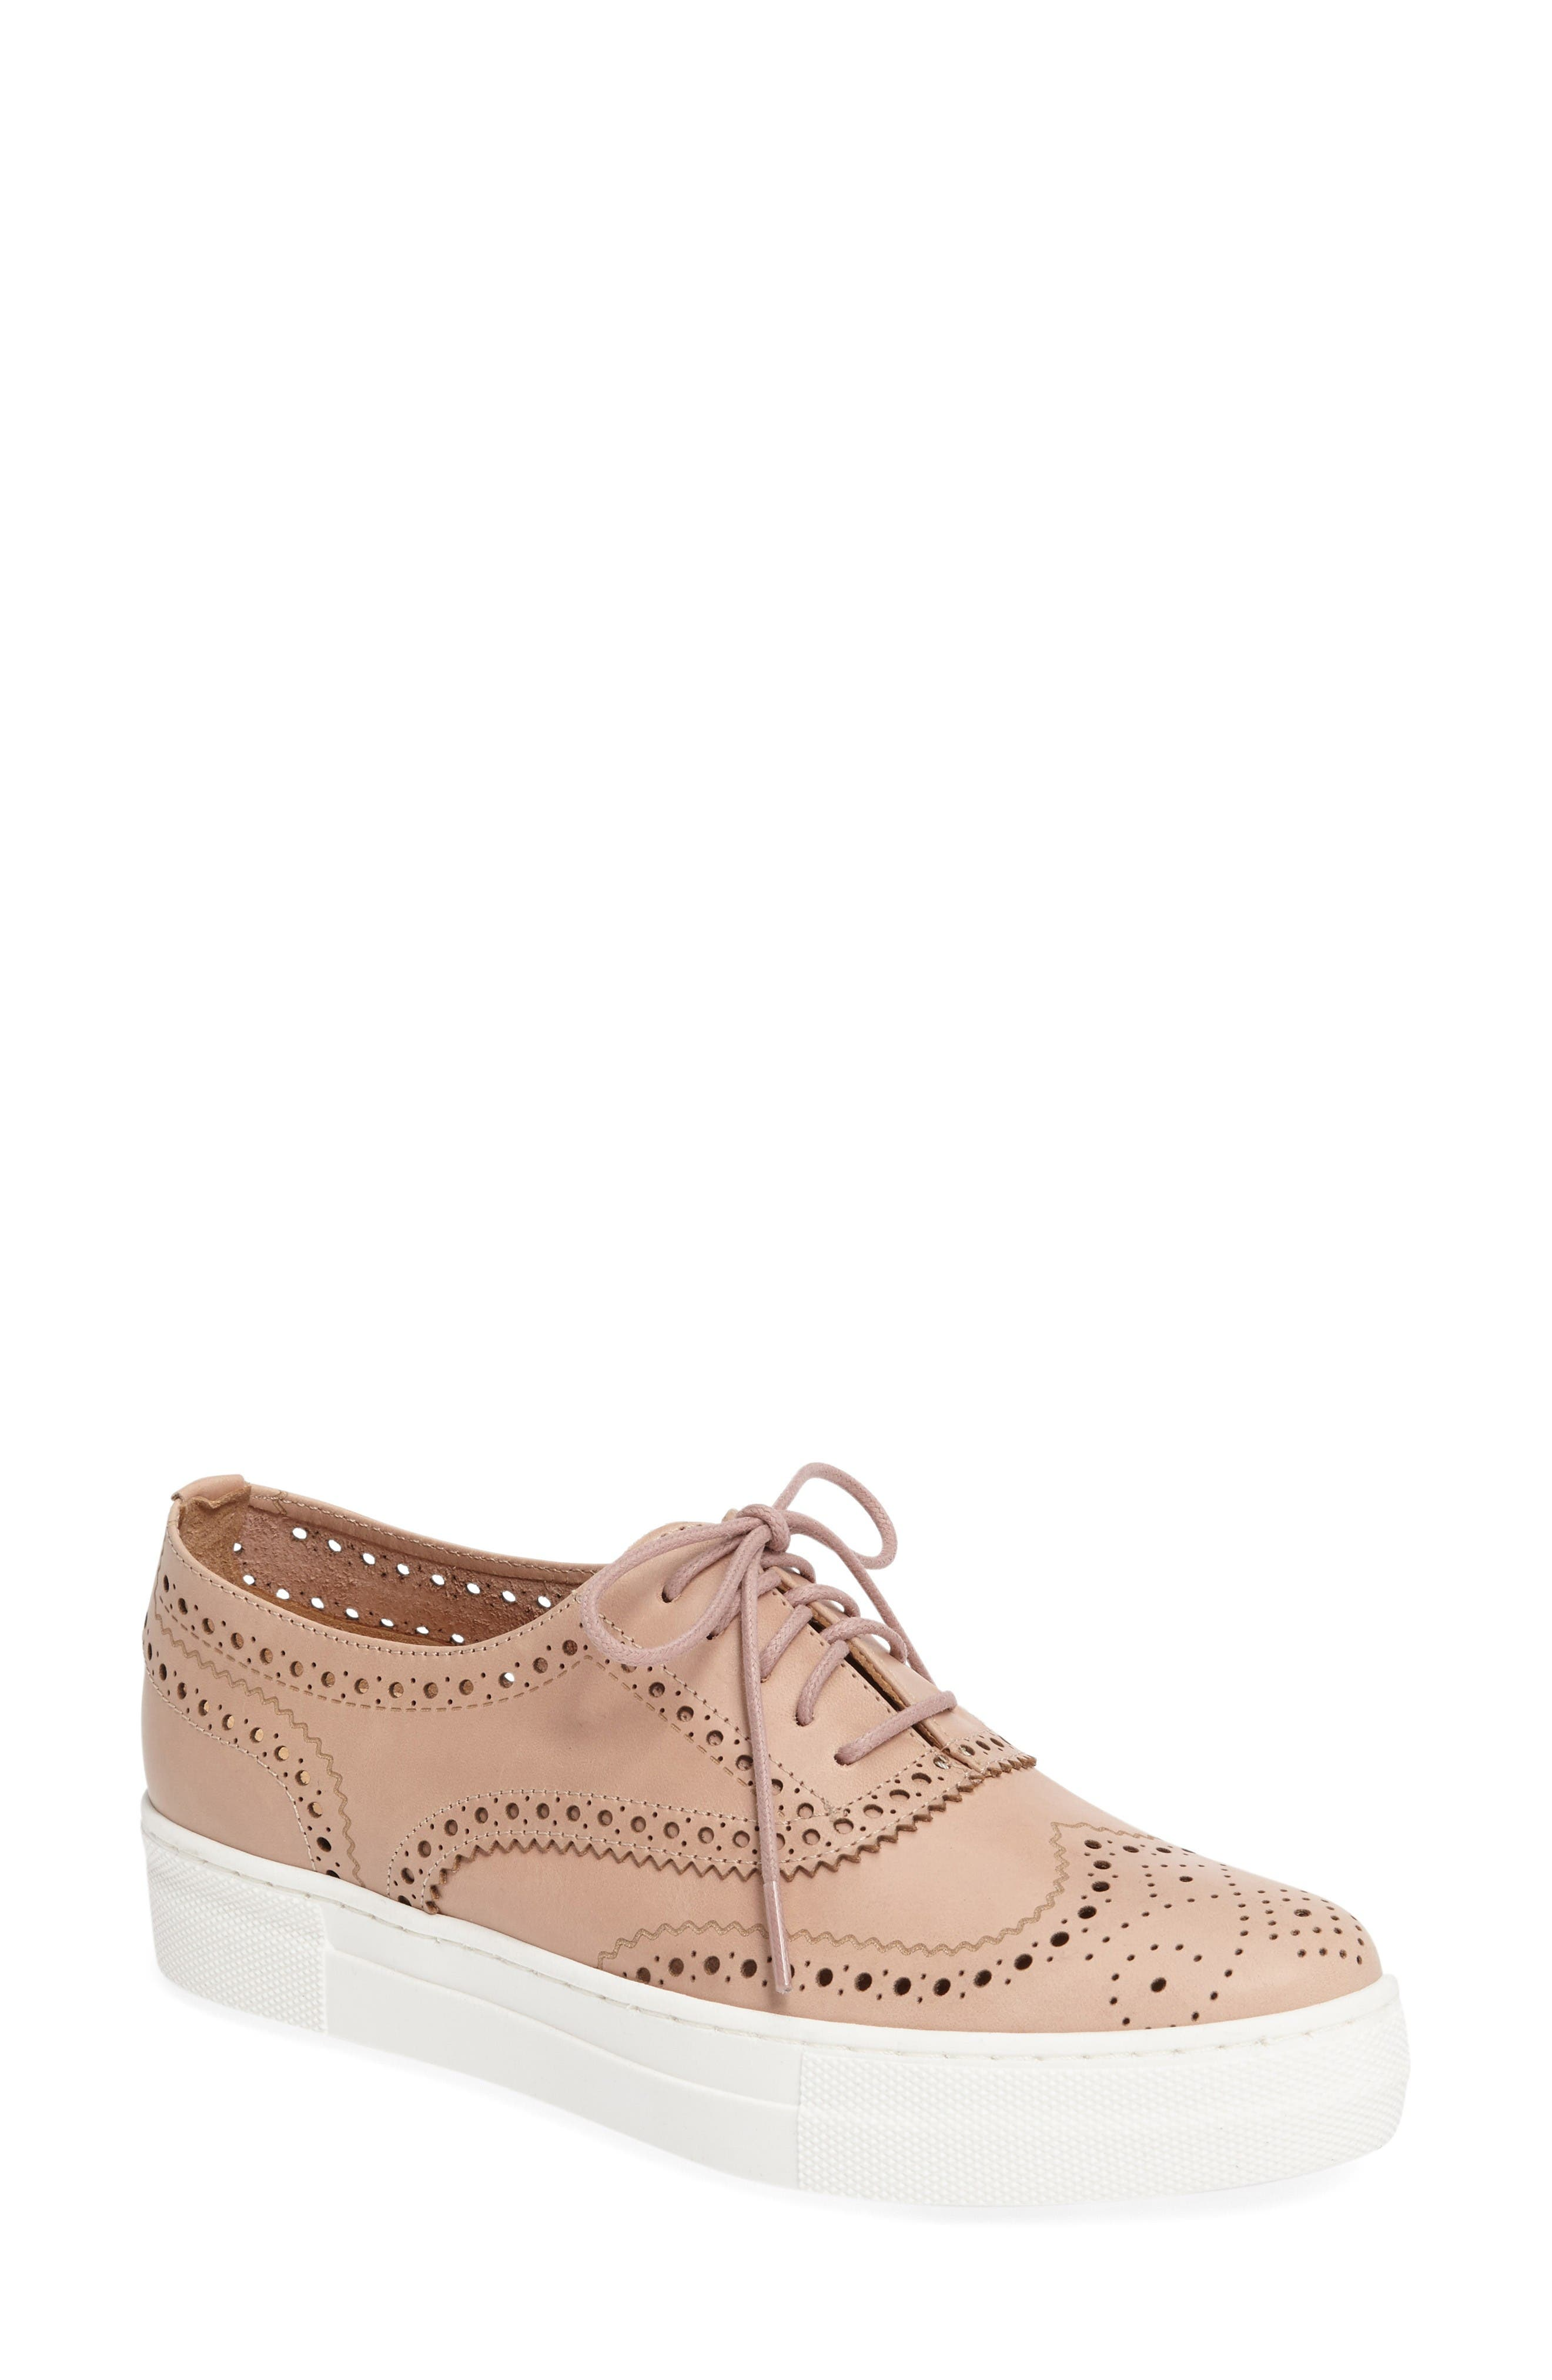 Shellys London Kimmie Perforated Platform Sneaker (Women)